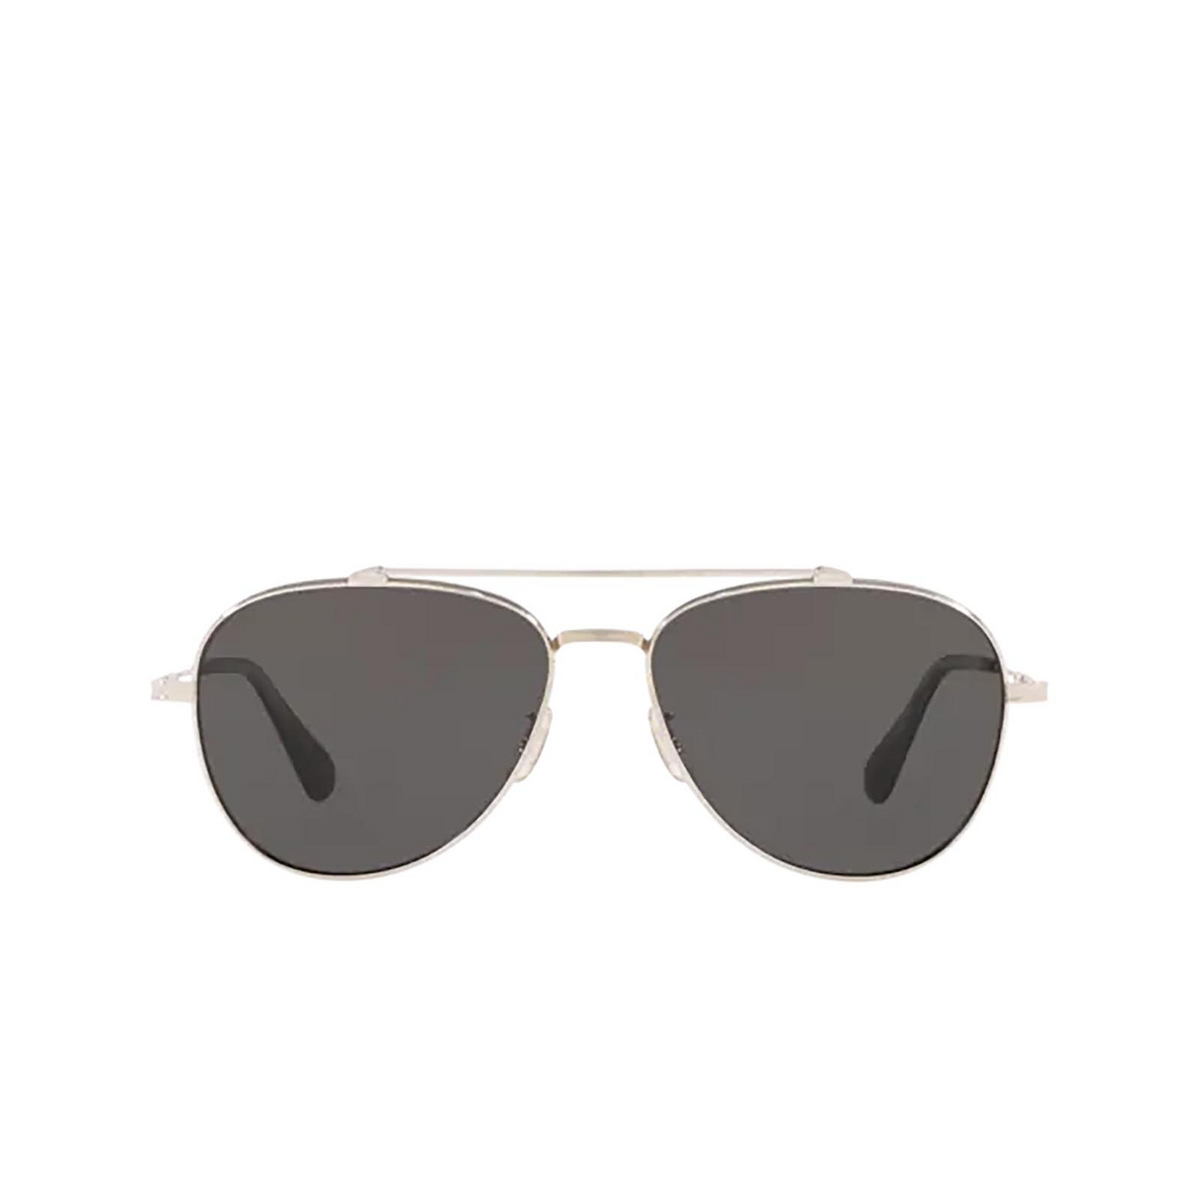 Oliver Peoples® Aviator Sunglasses: Rikson OV1266ST color Silver 503687 - front view.